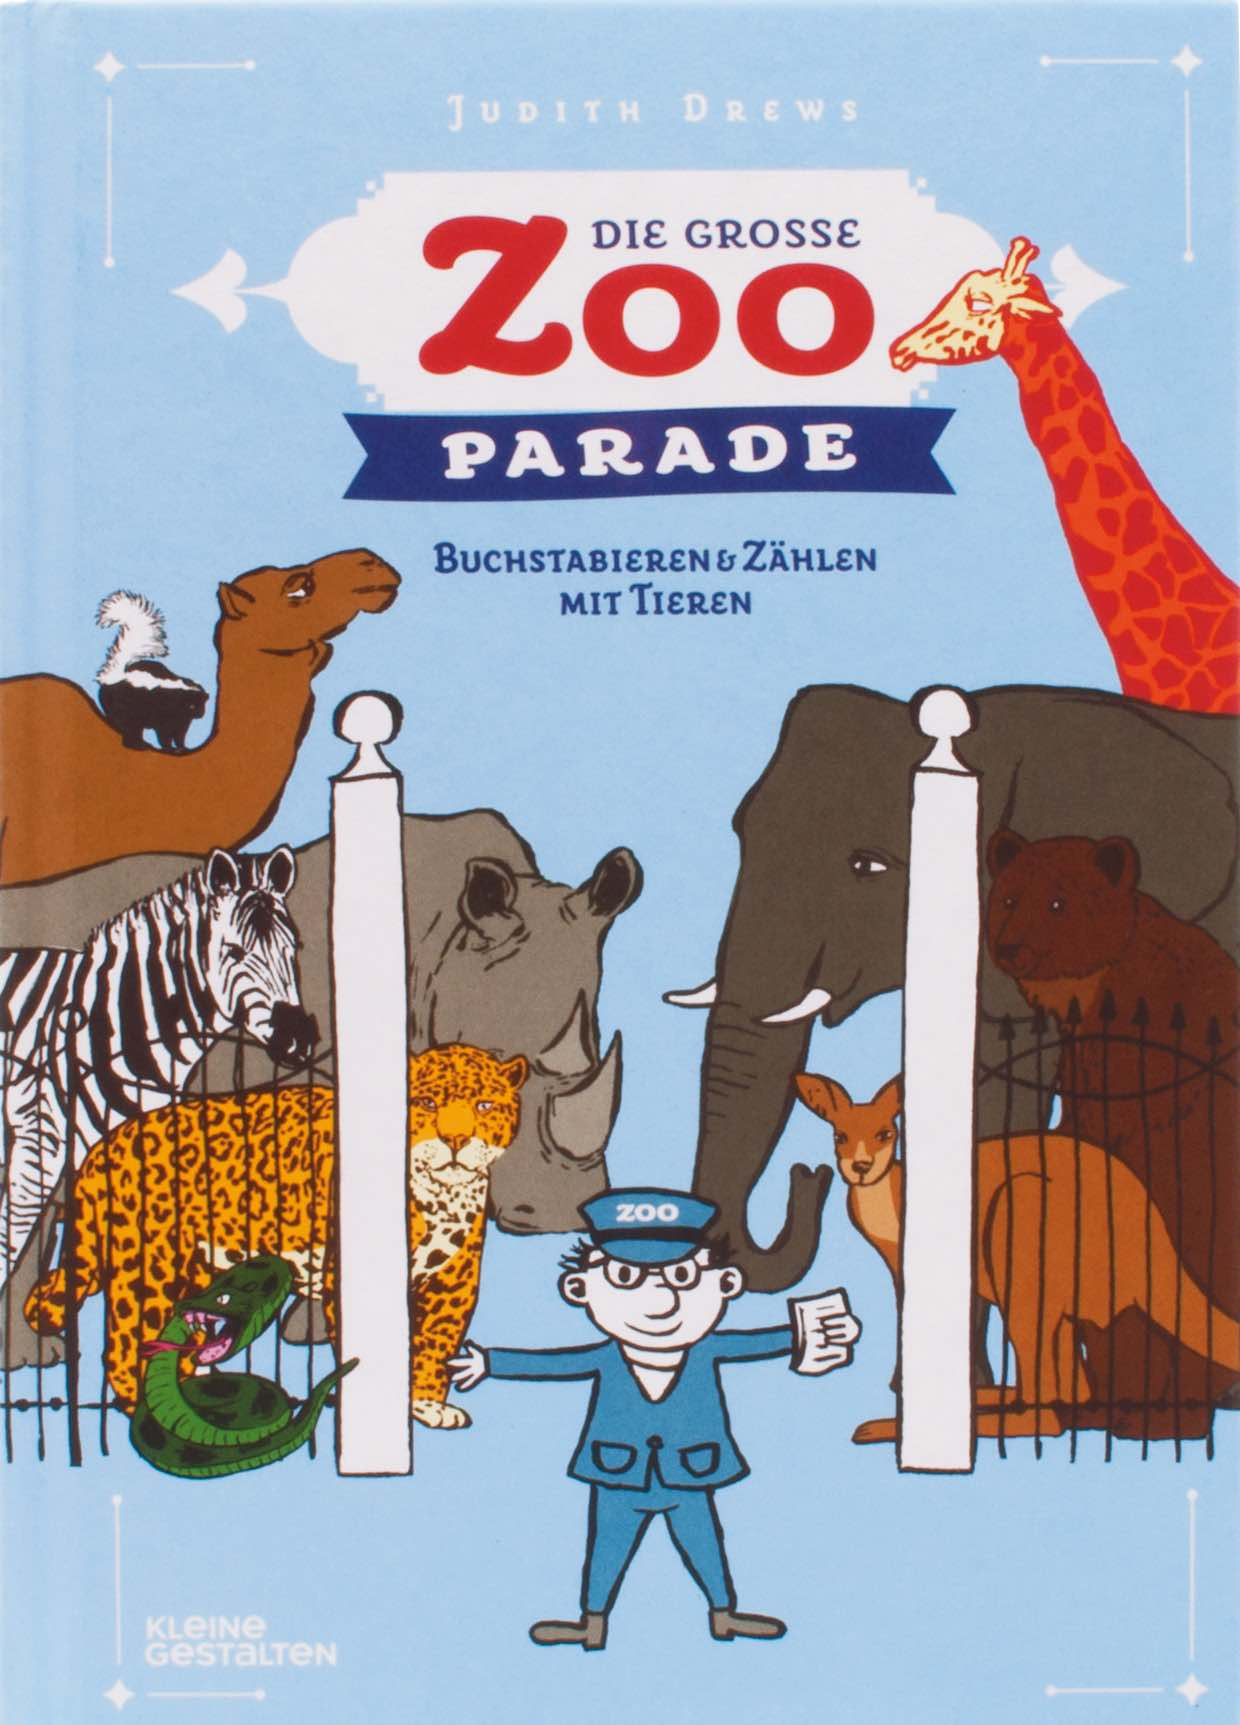 die-grosse-zooparade_presse_cover